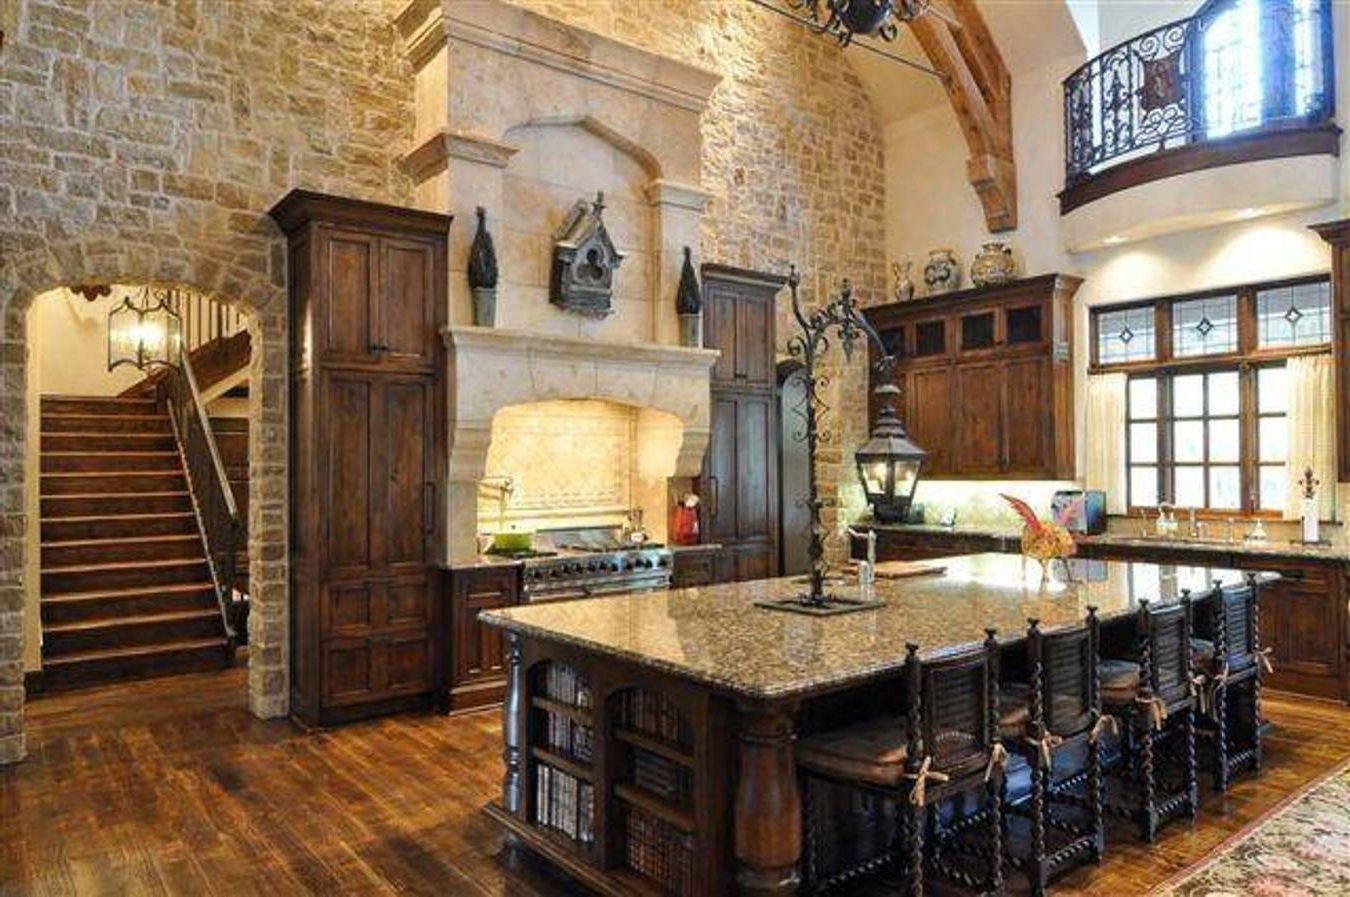 tuscan kitchen island amish cabinets mediterranean rustic with stone wall